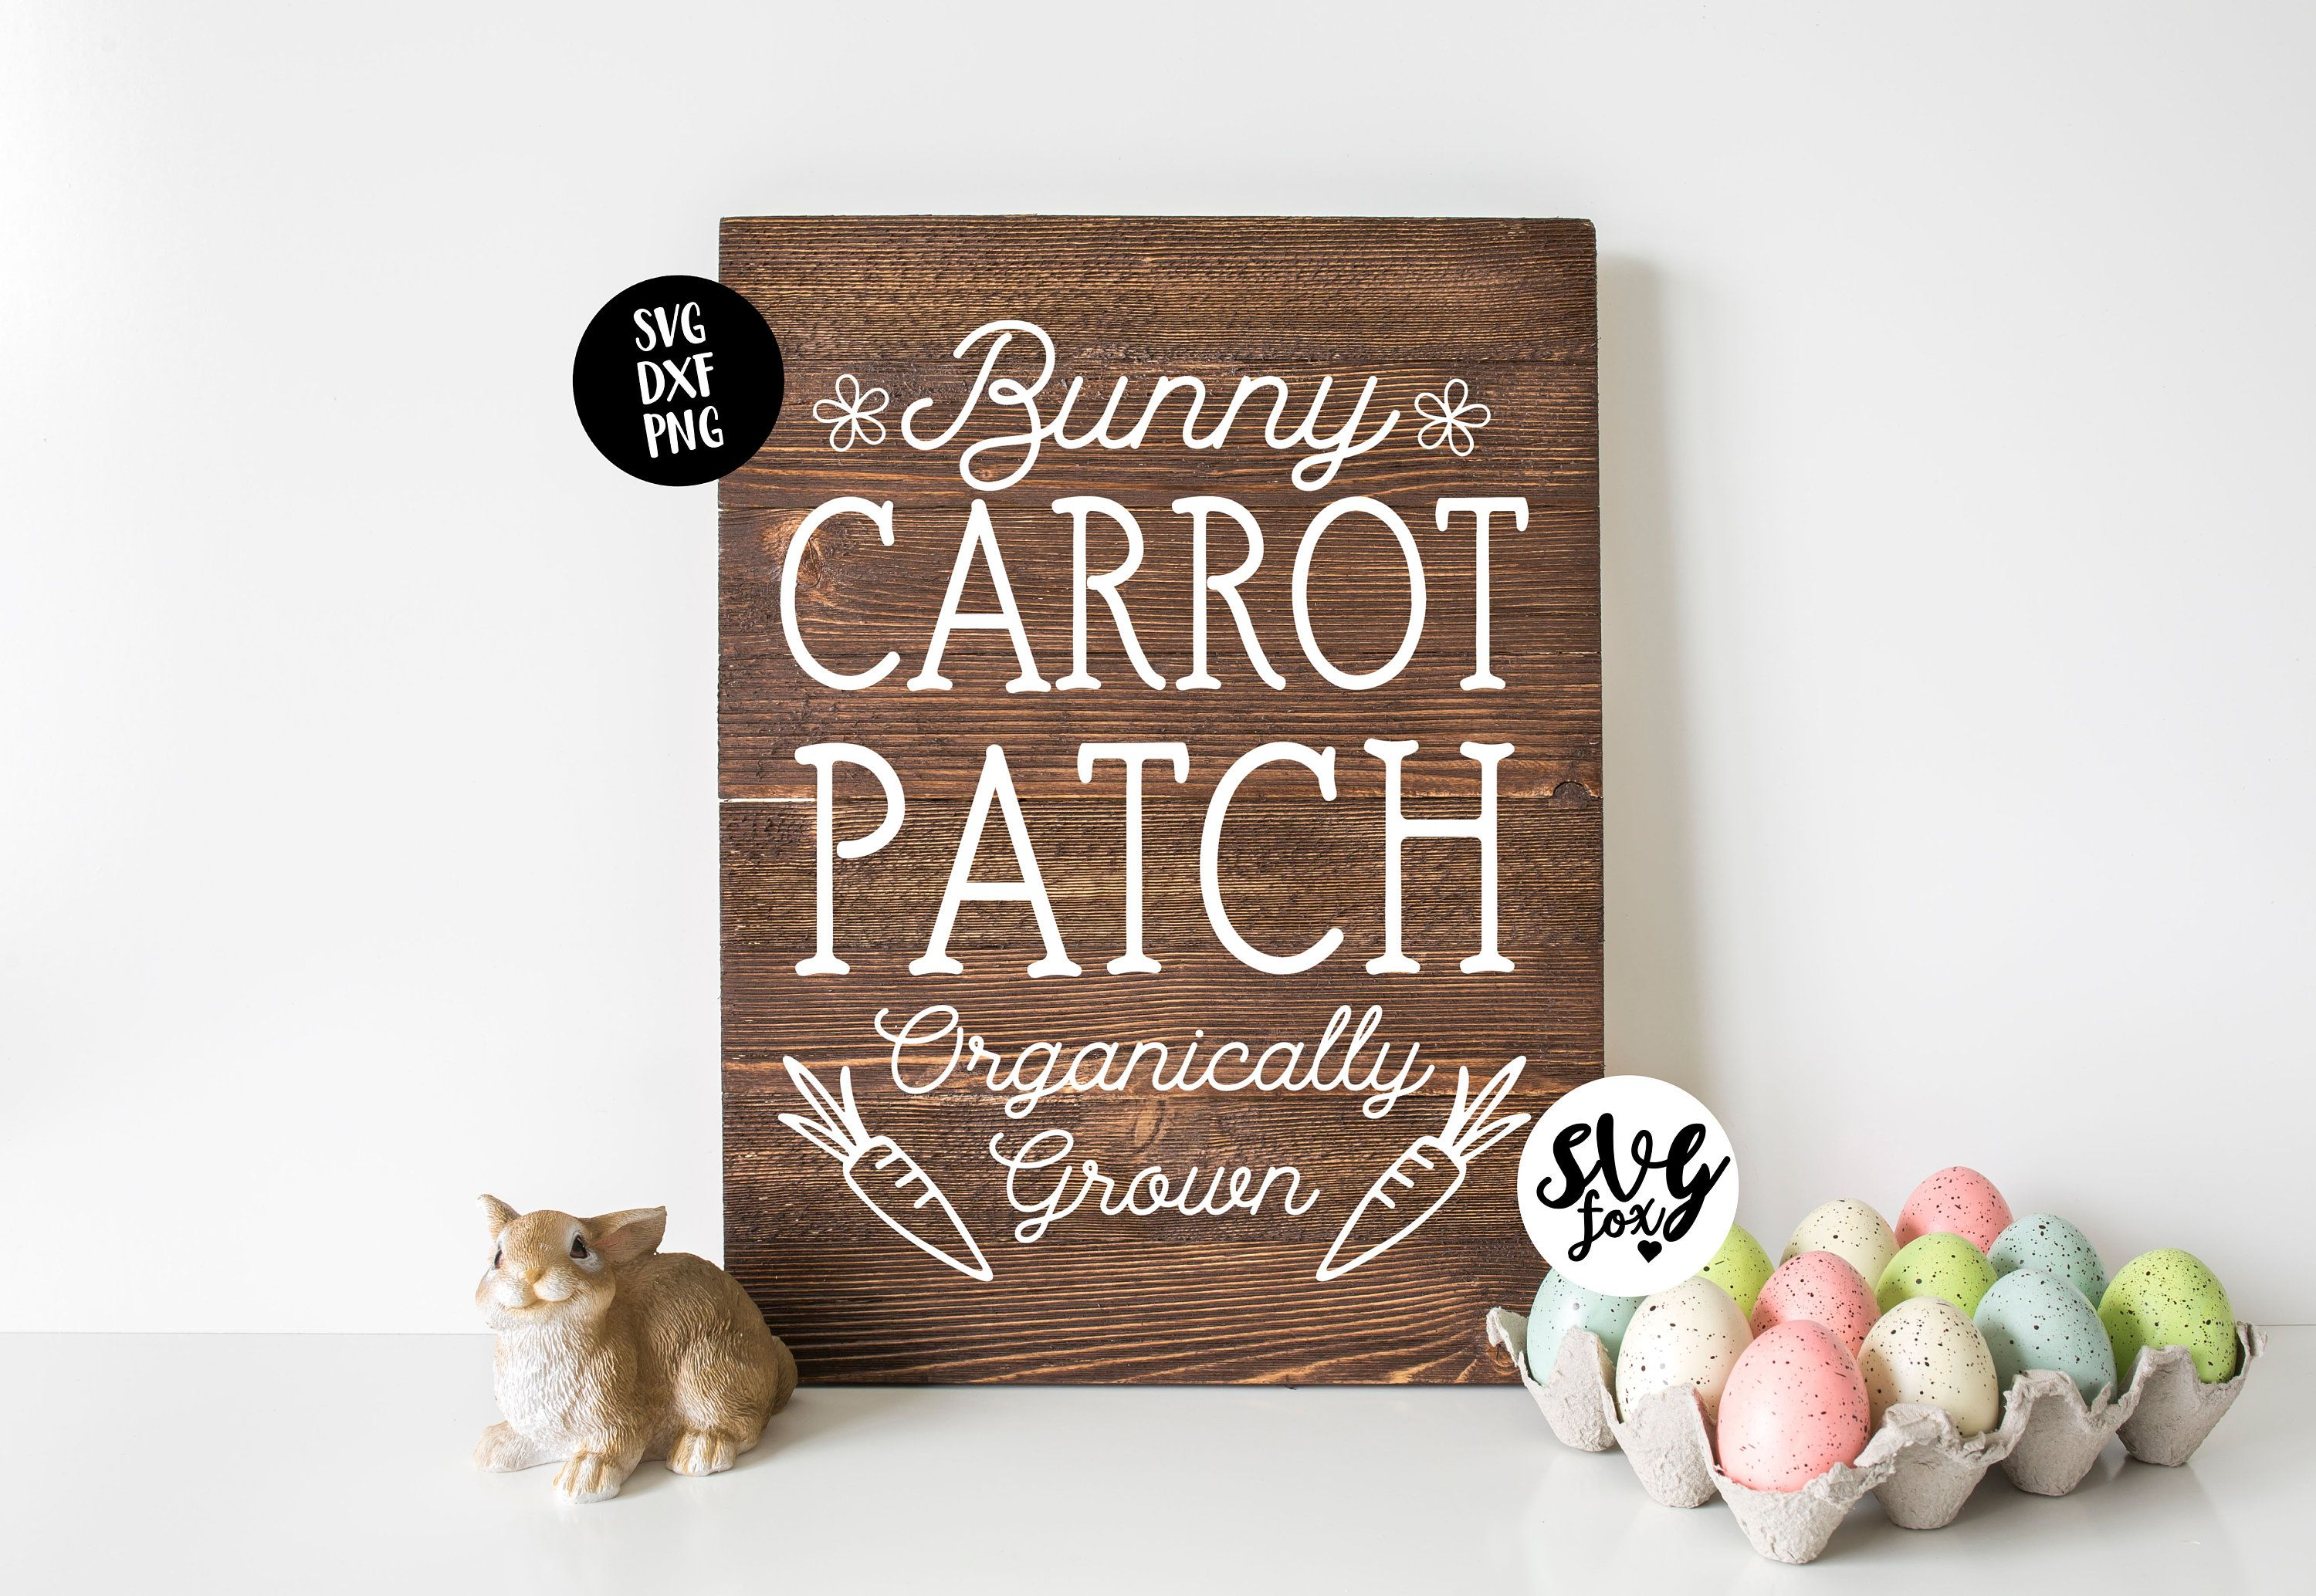 Instant Svg Dxf Png Carrot Patch Easter Vertical Sign Svg